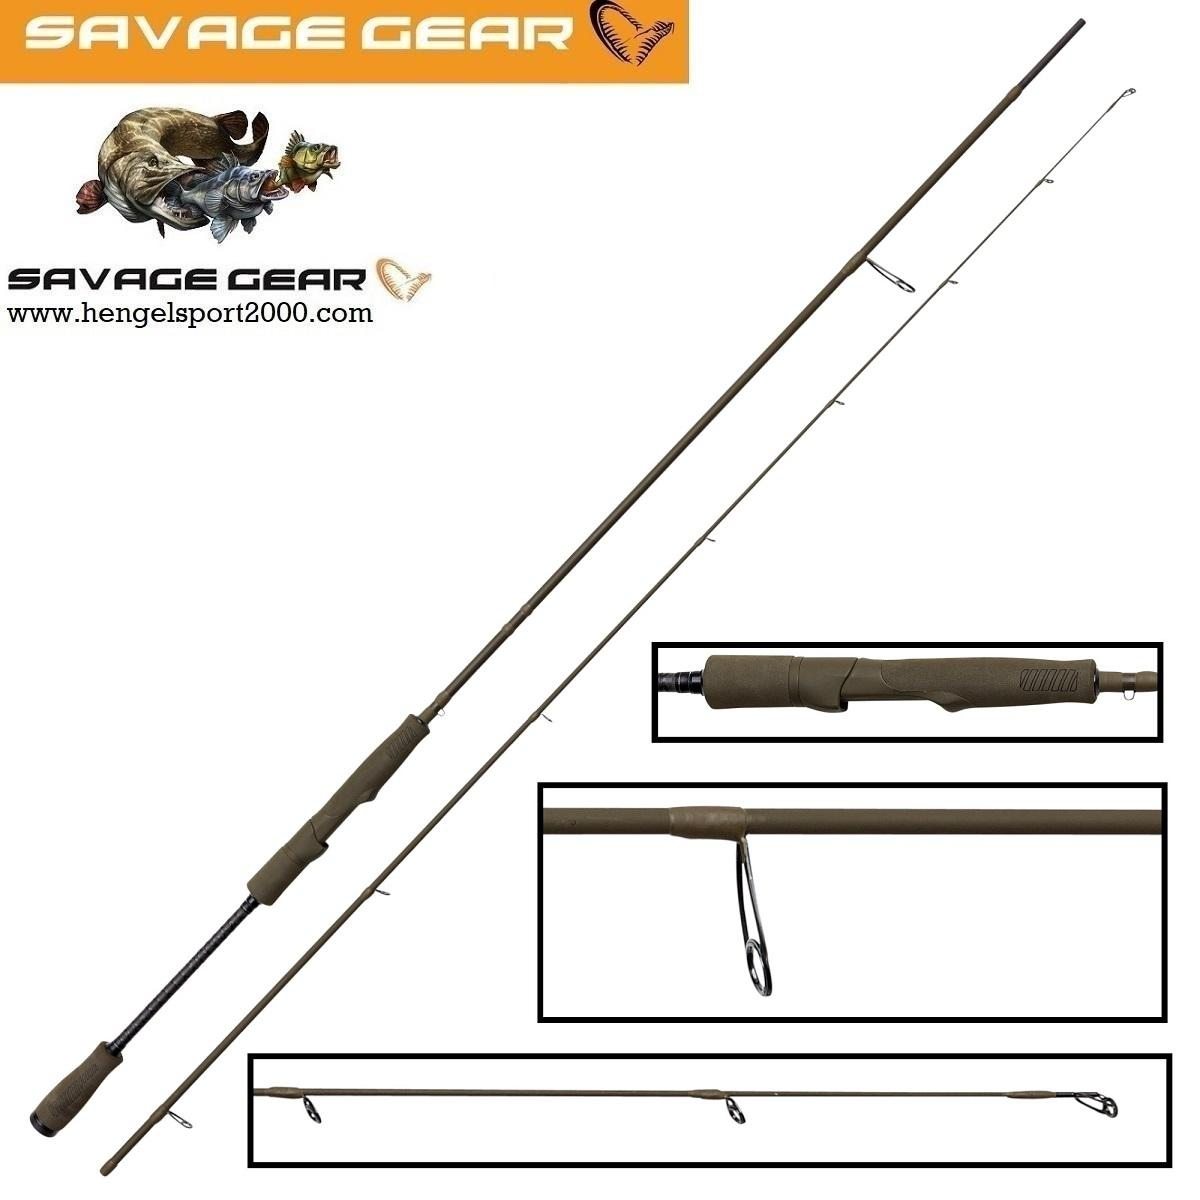 Savage Gear SG4 Light Game Rod 251 cm 3 - 14 gram